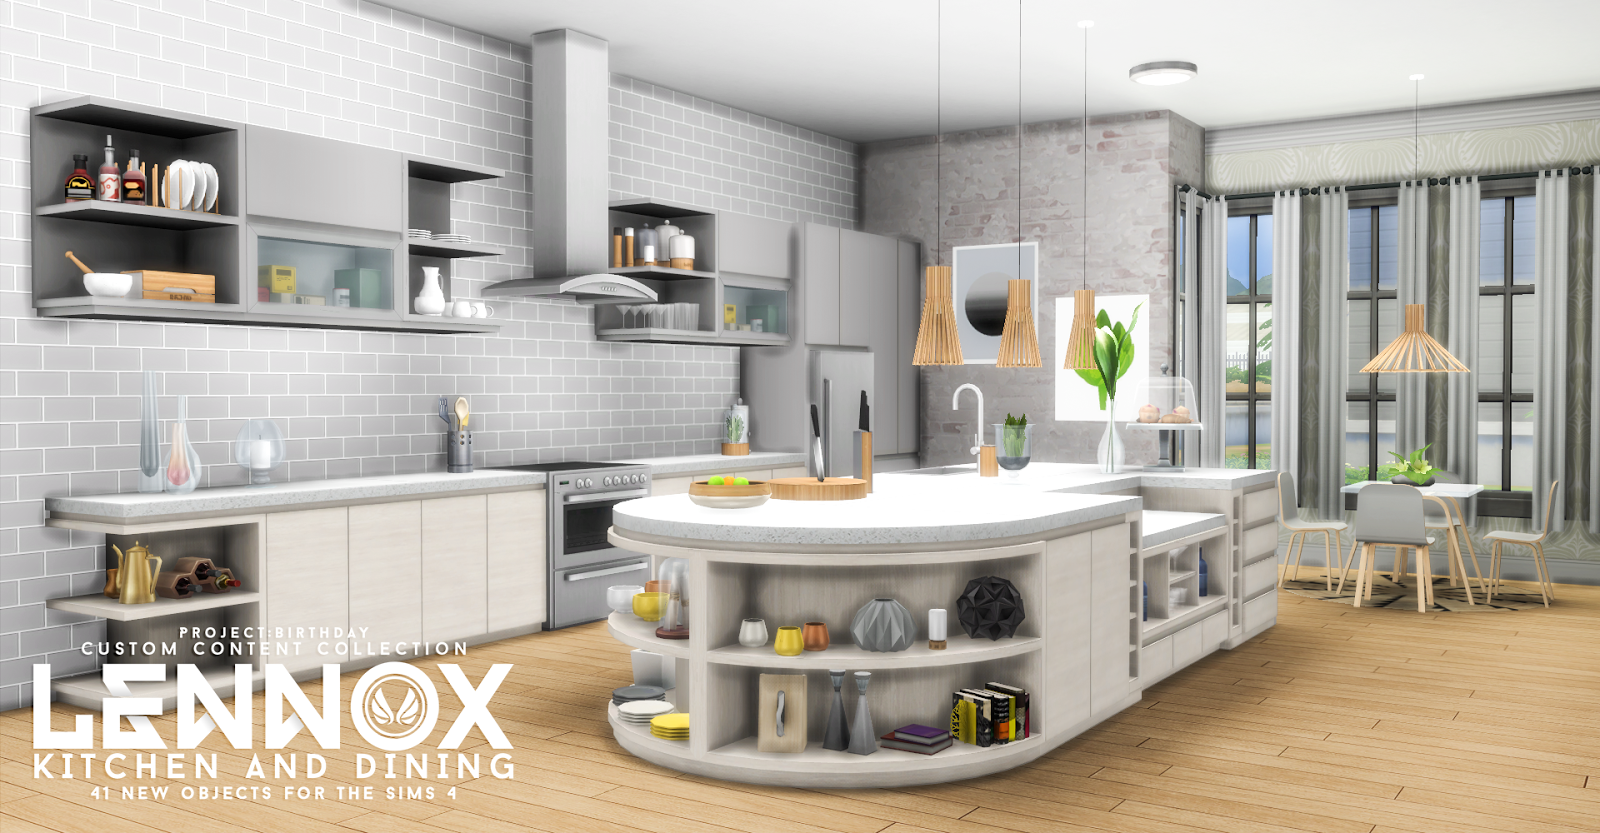 Sims 4 Cc 39 S The Best Lennox Kitchen And Dining Set By Peacemaker Ic